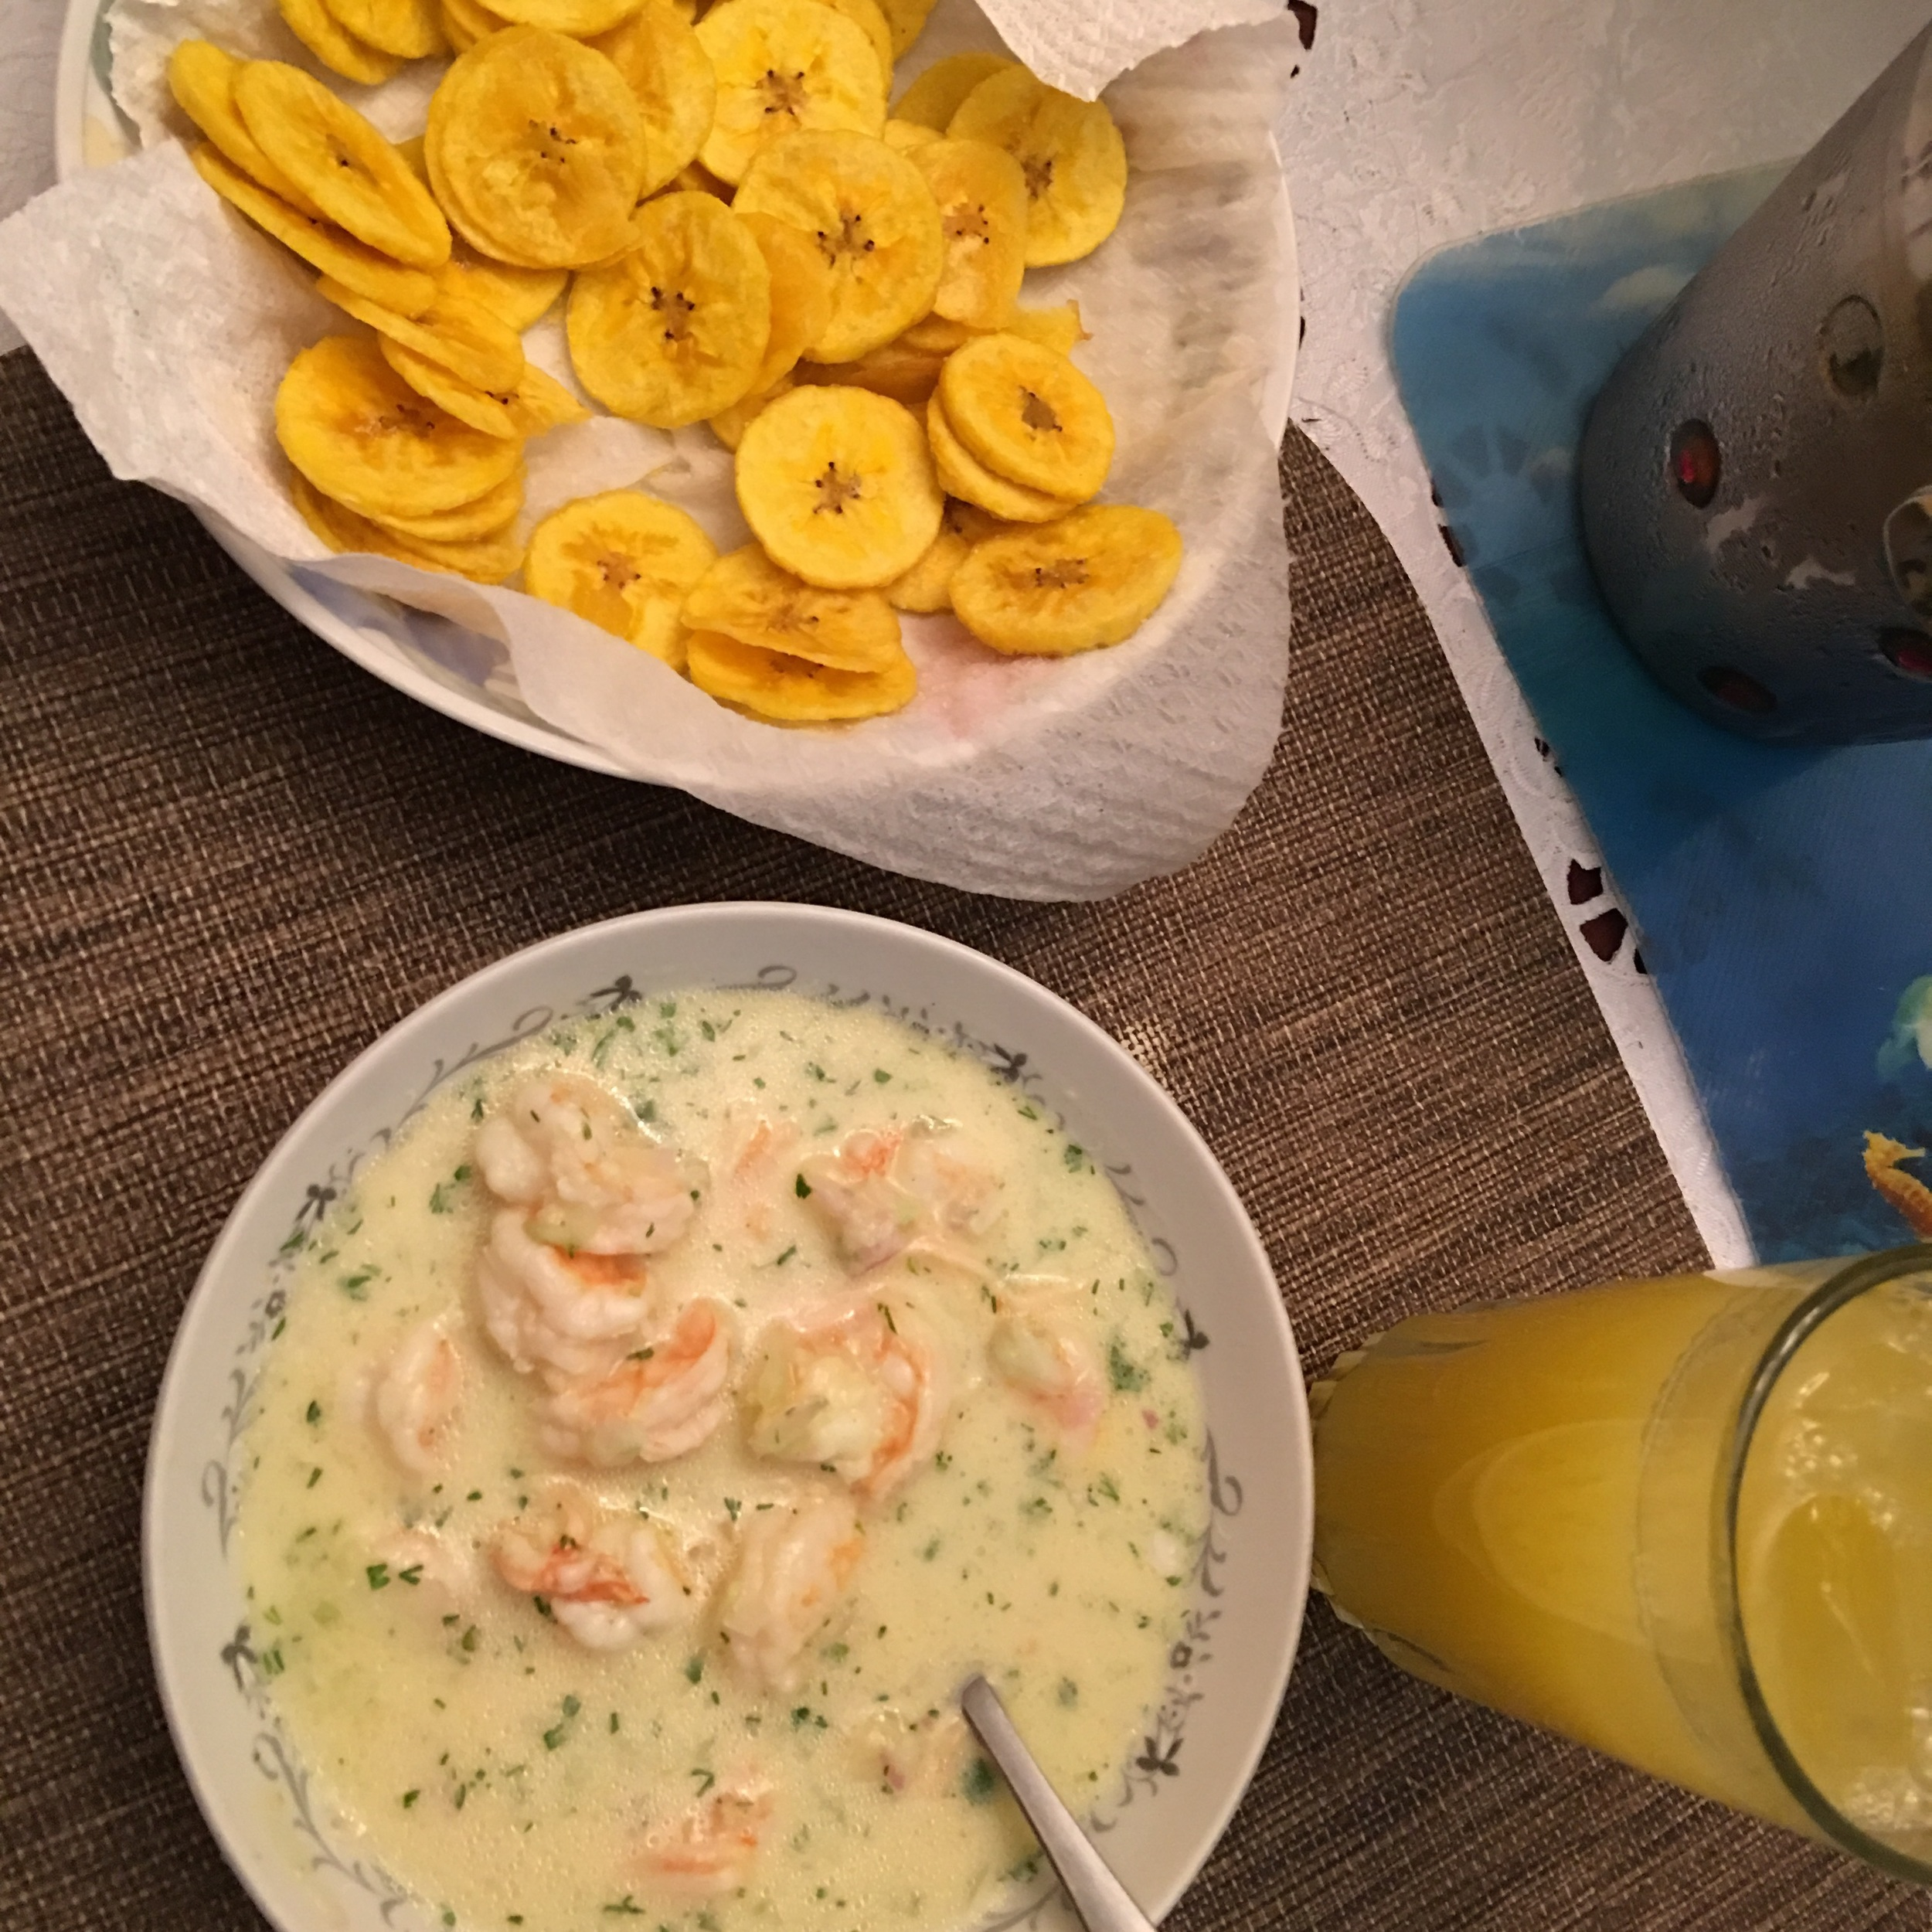 Ceviche de camarón, fried plaintain chips and fresh orange juice, oh yes!